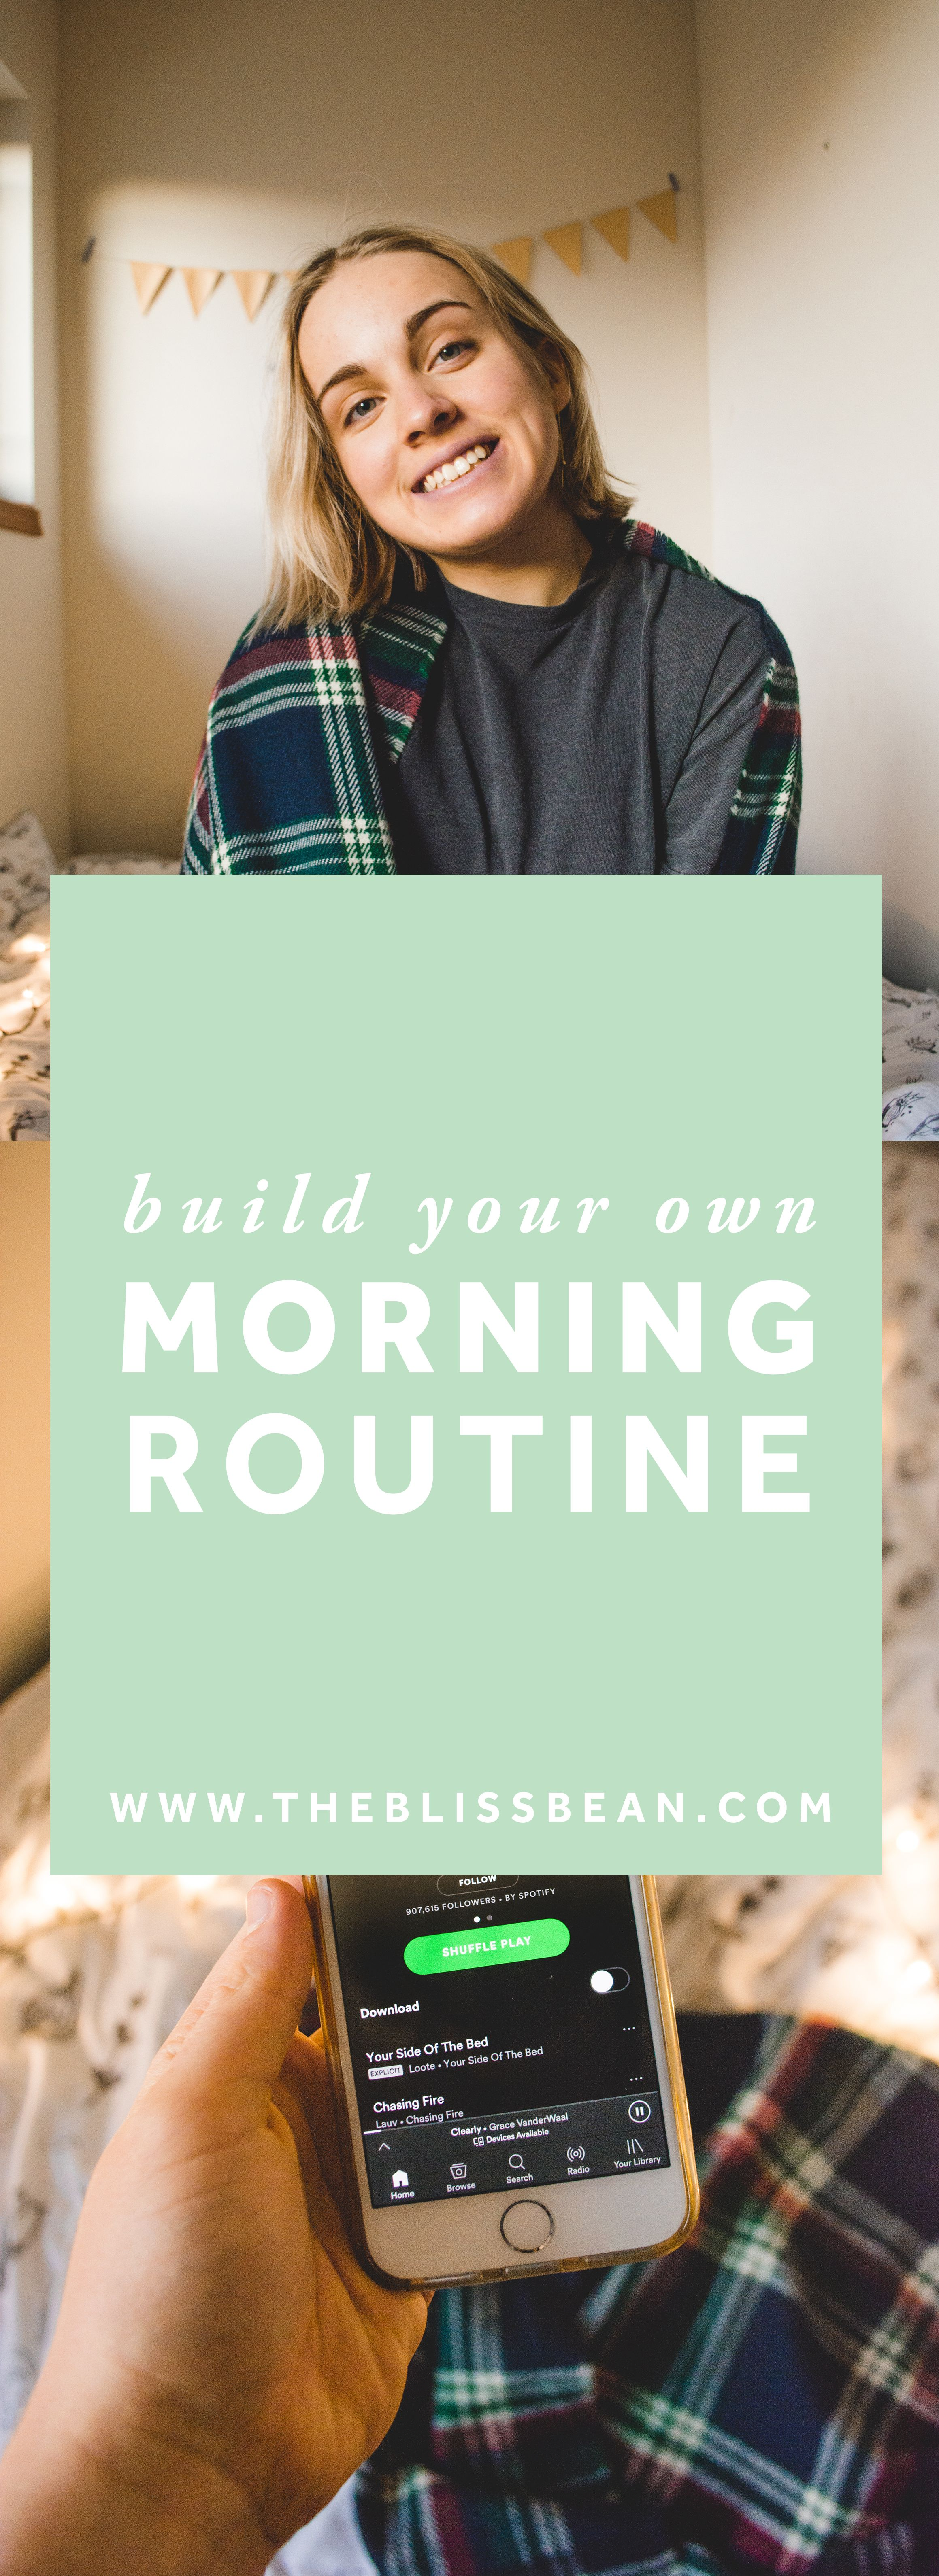 Build Your Own Morning Routine 27 Habit Ideas A